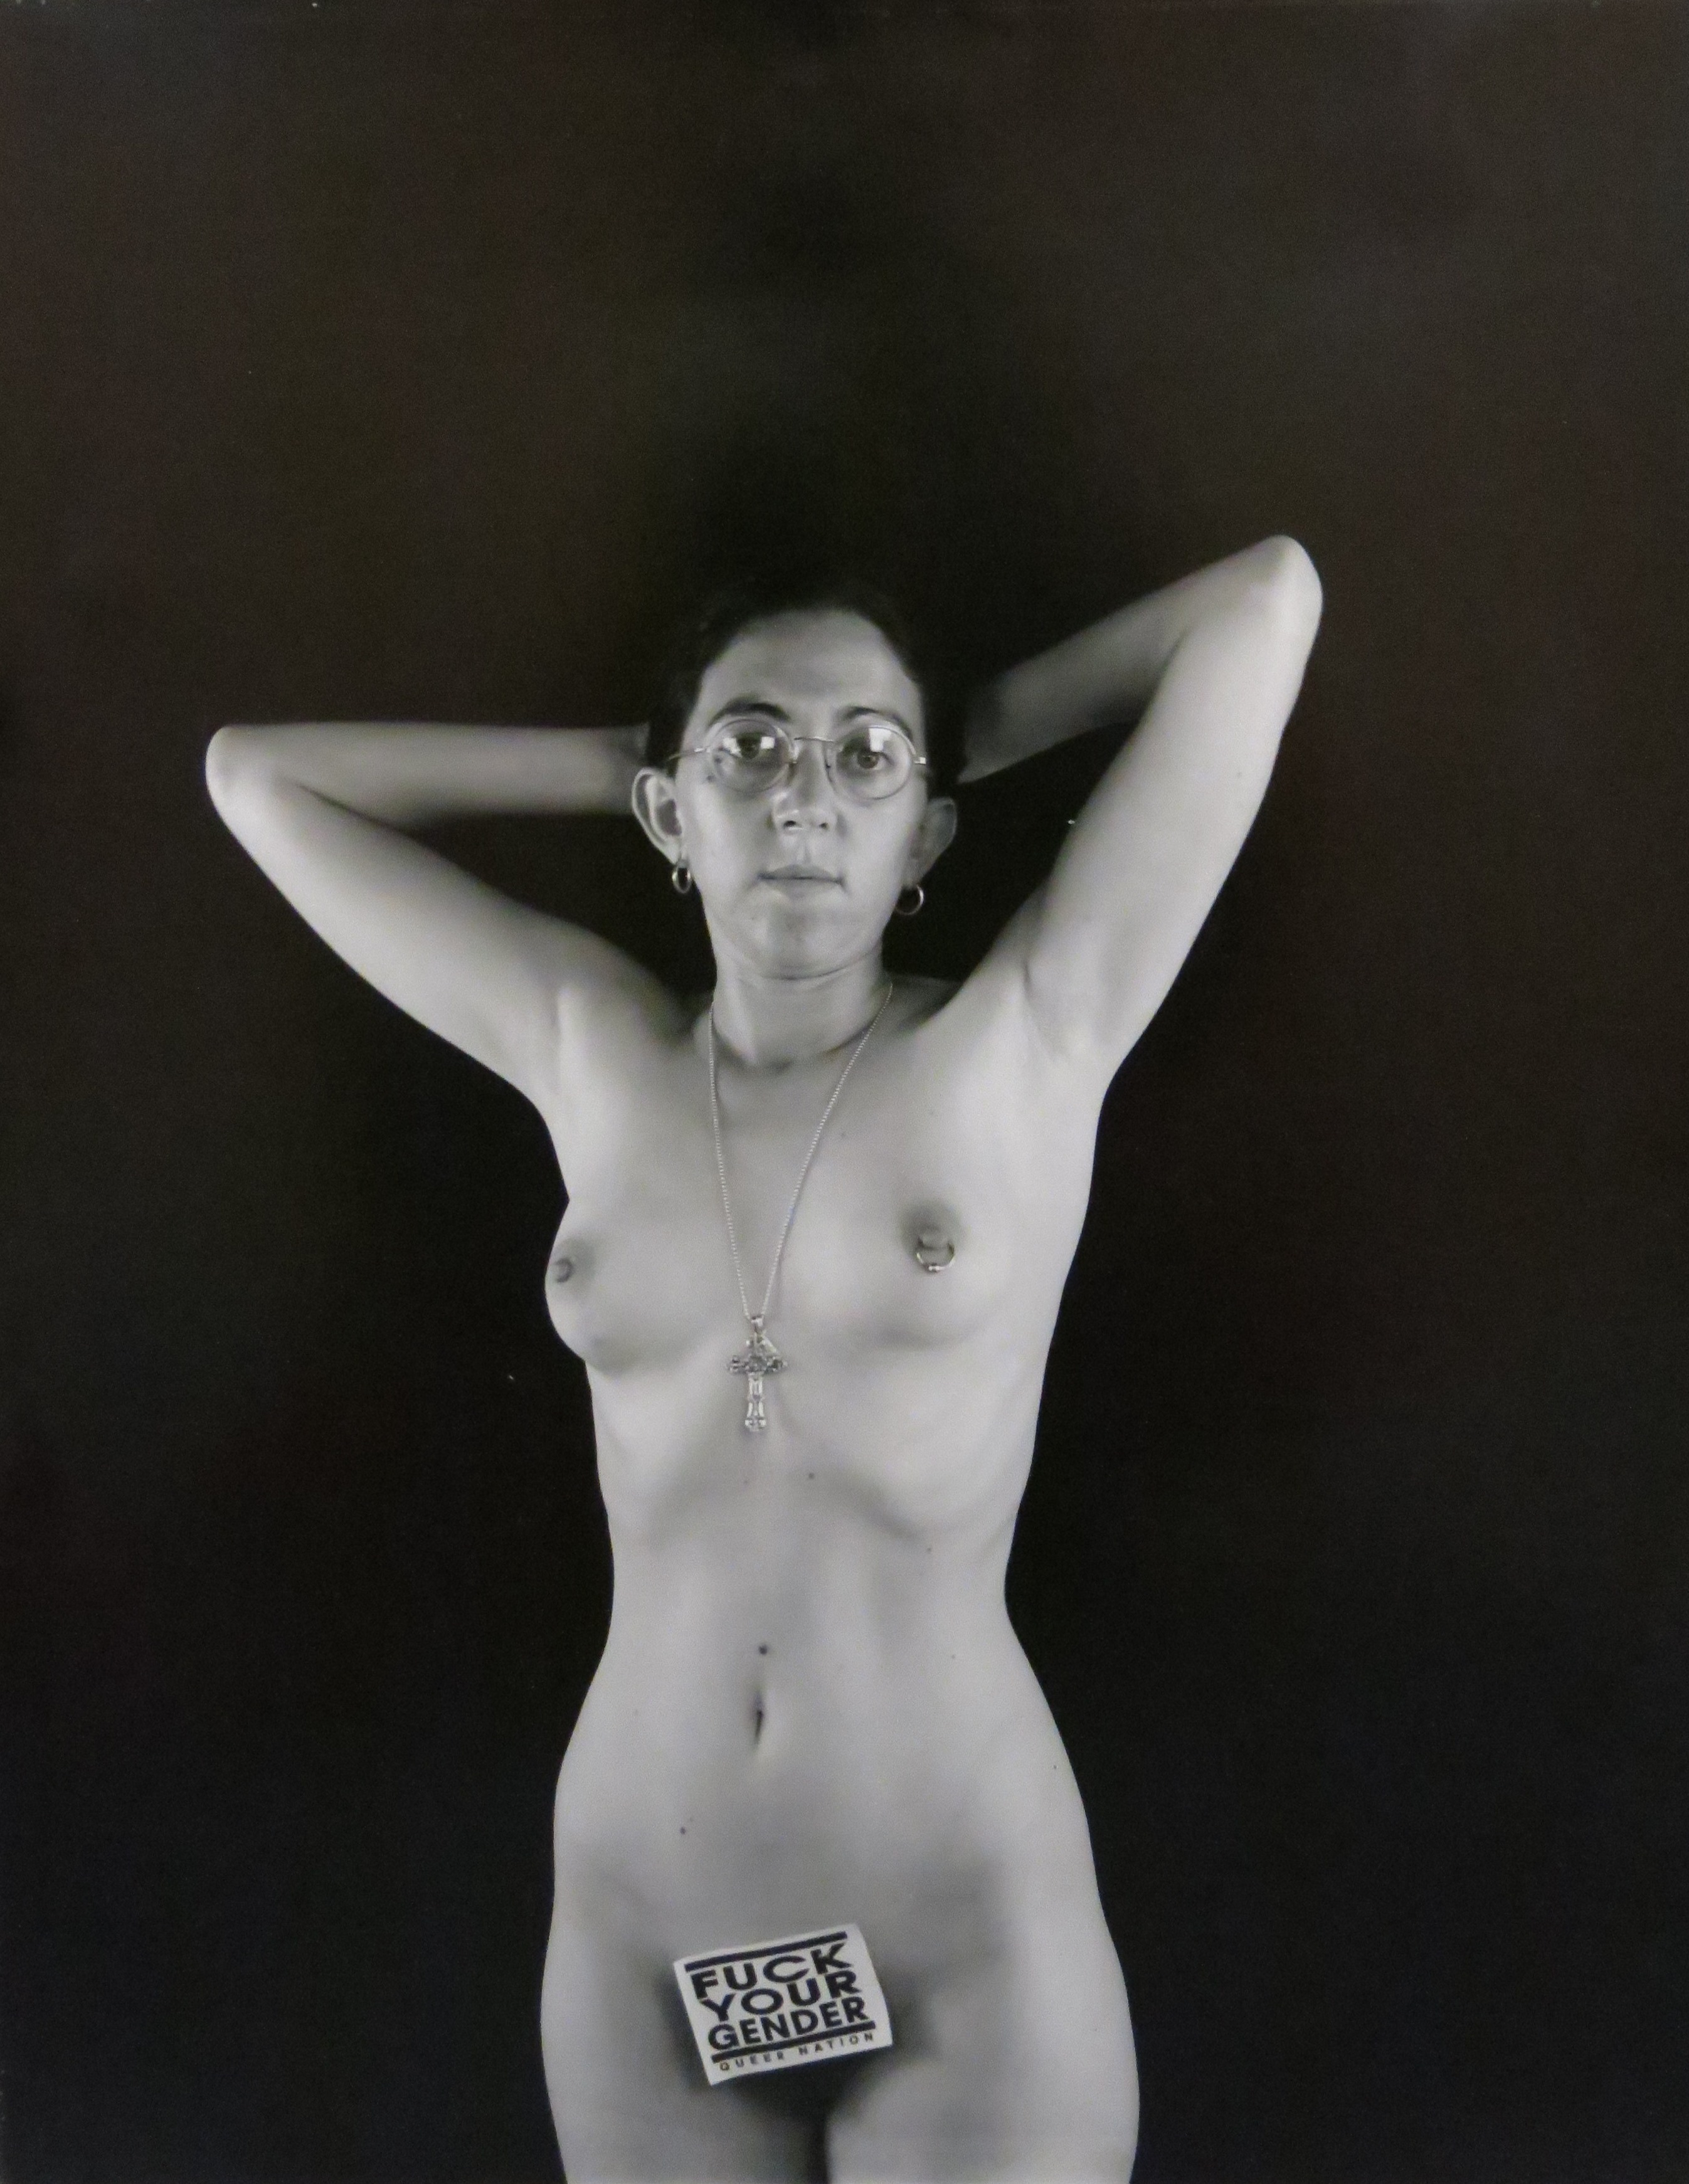 Laura Aguilar, Fuck Your Gender, Photography, 1991. Gift of Anne Ayres.